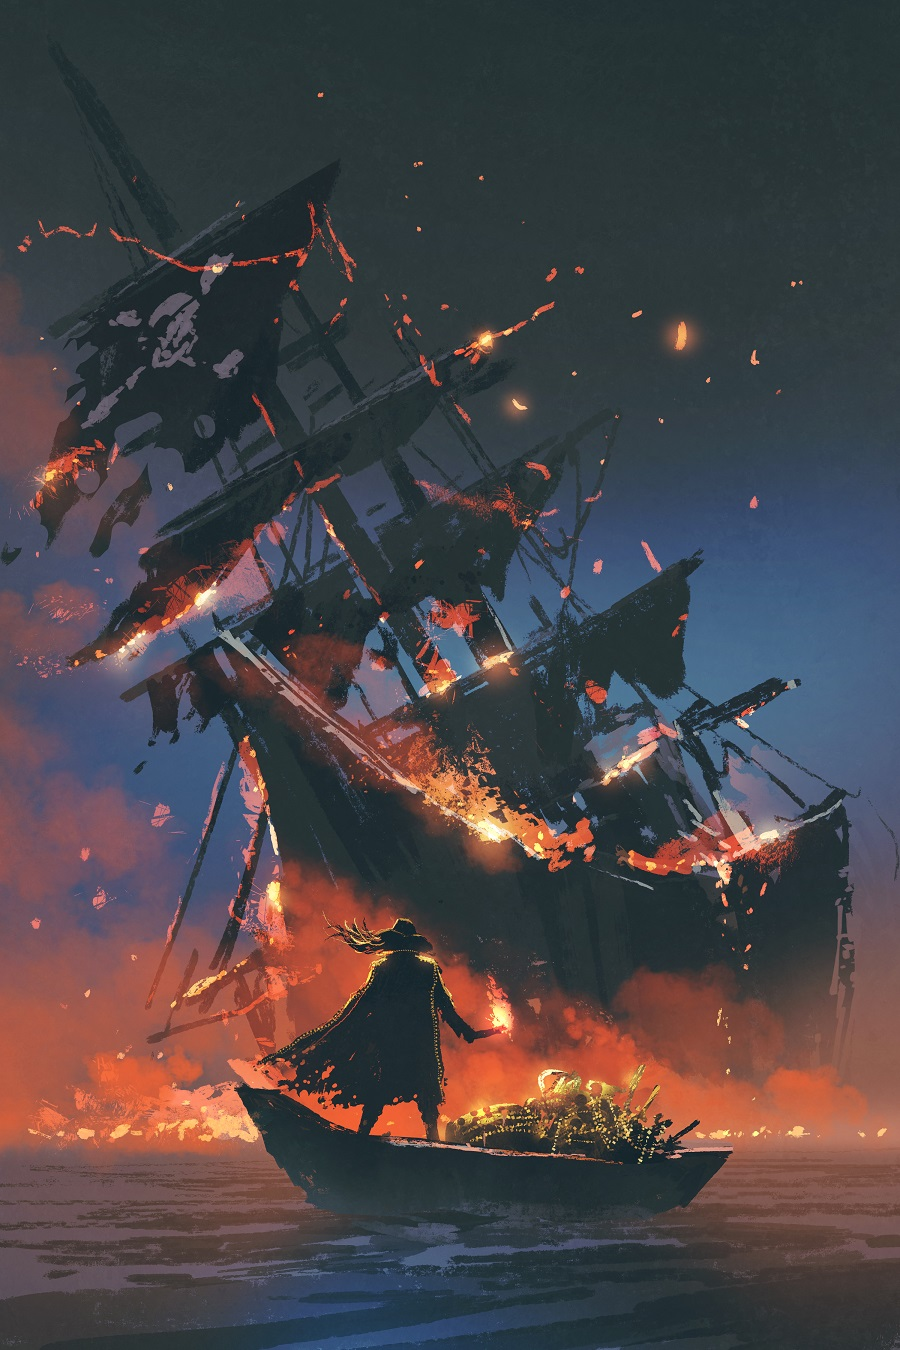 This is a mighty Pirate Ship, all aflame, sure to make a mighty fine Piratical Story!